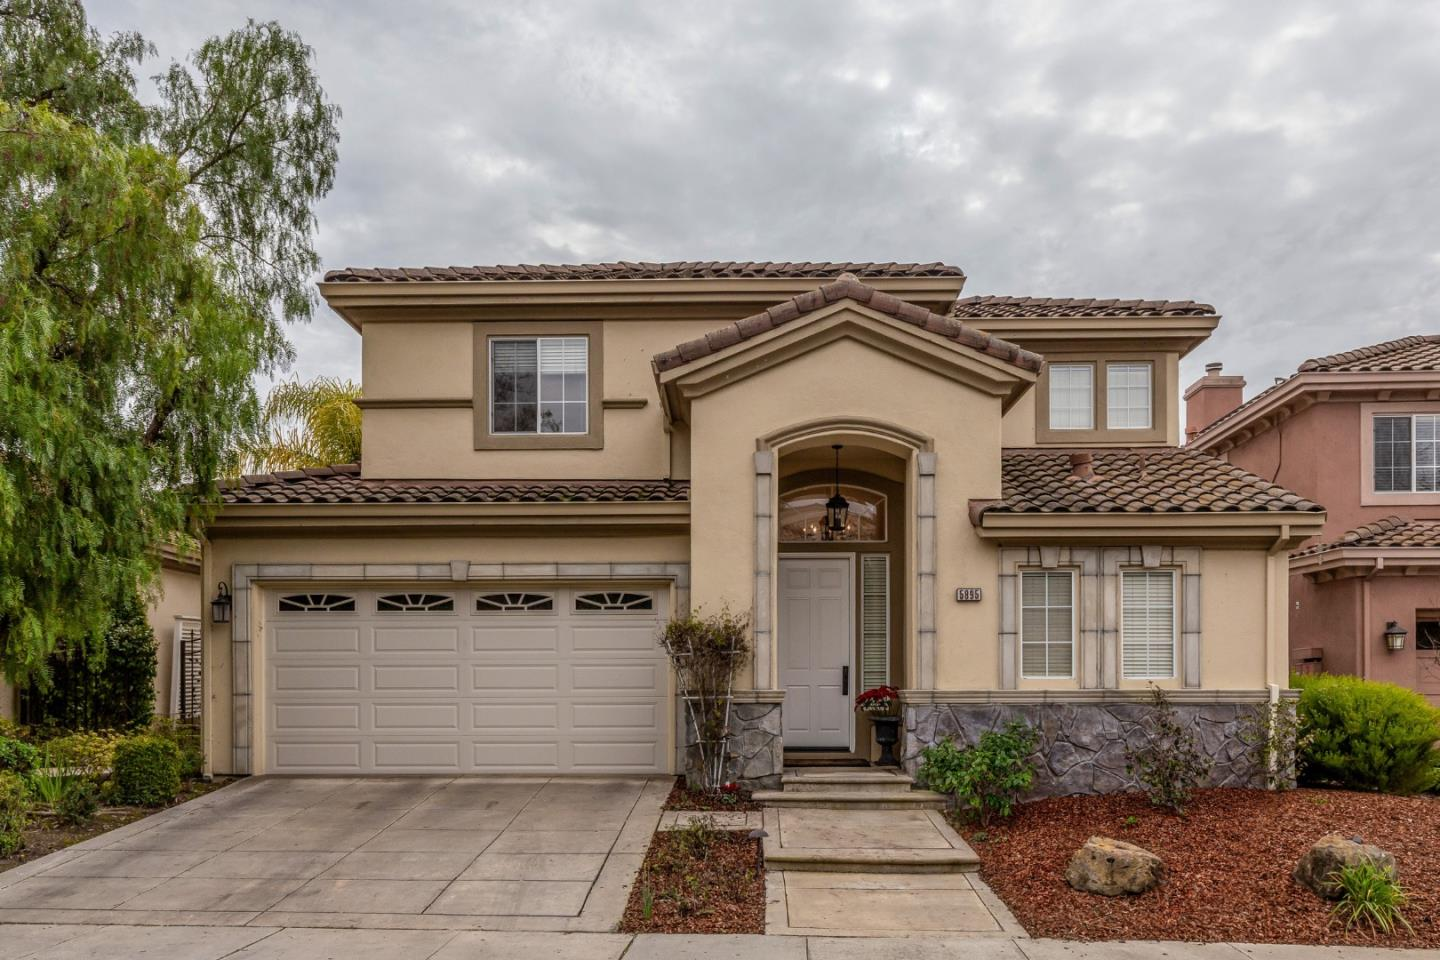 5895 Killarney CIR, Evergreen, California